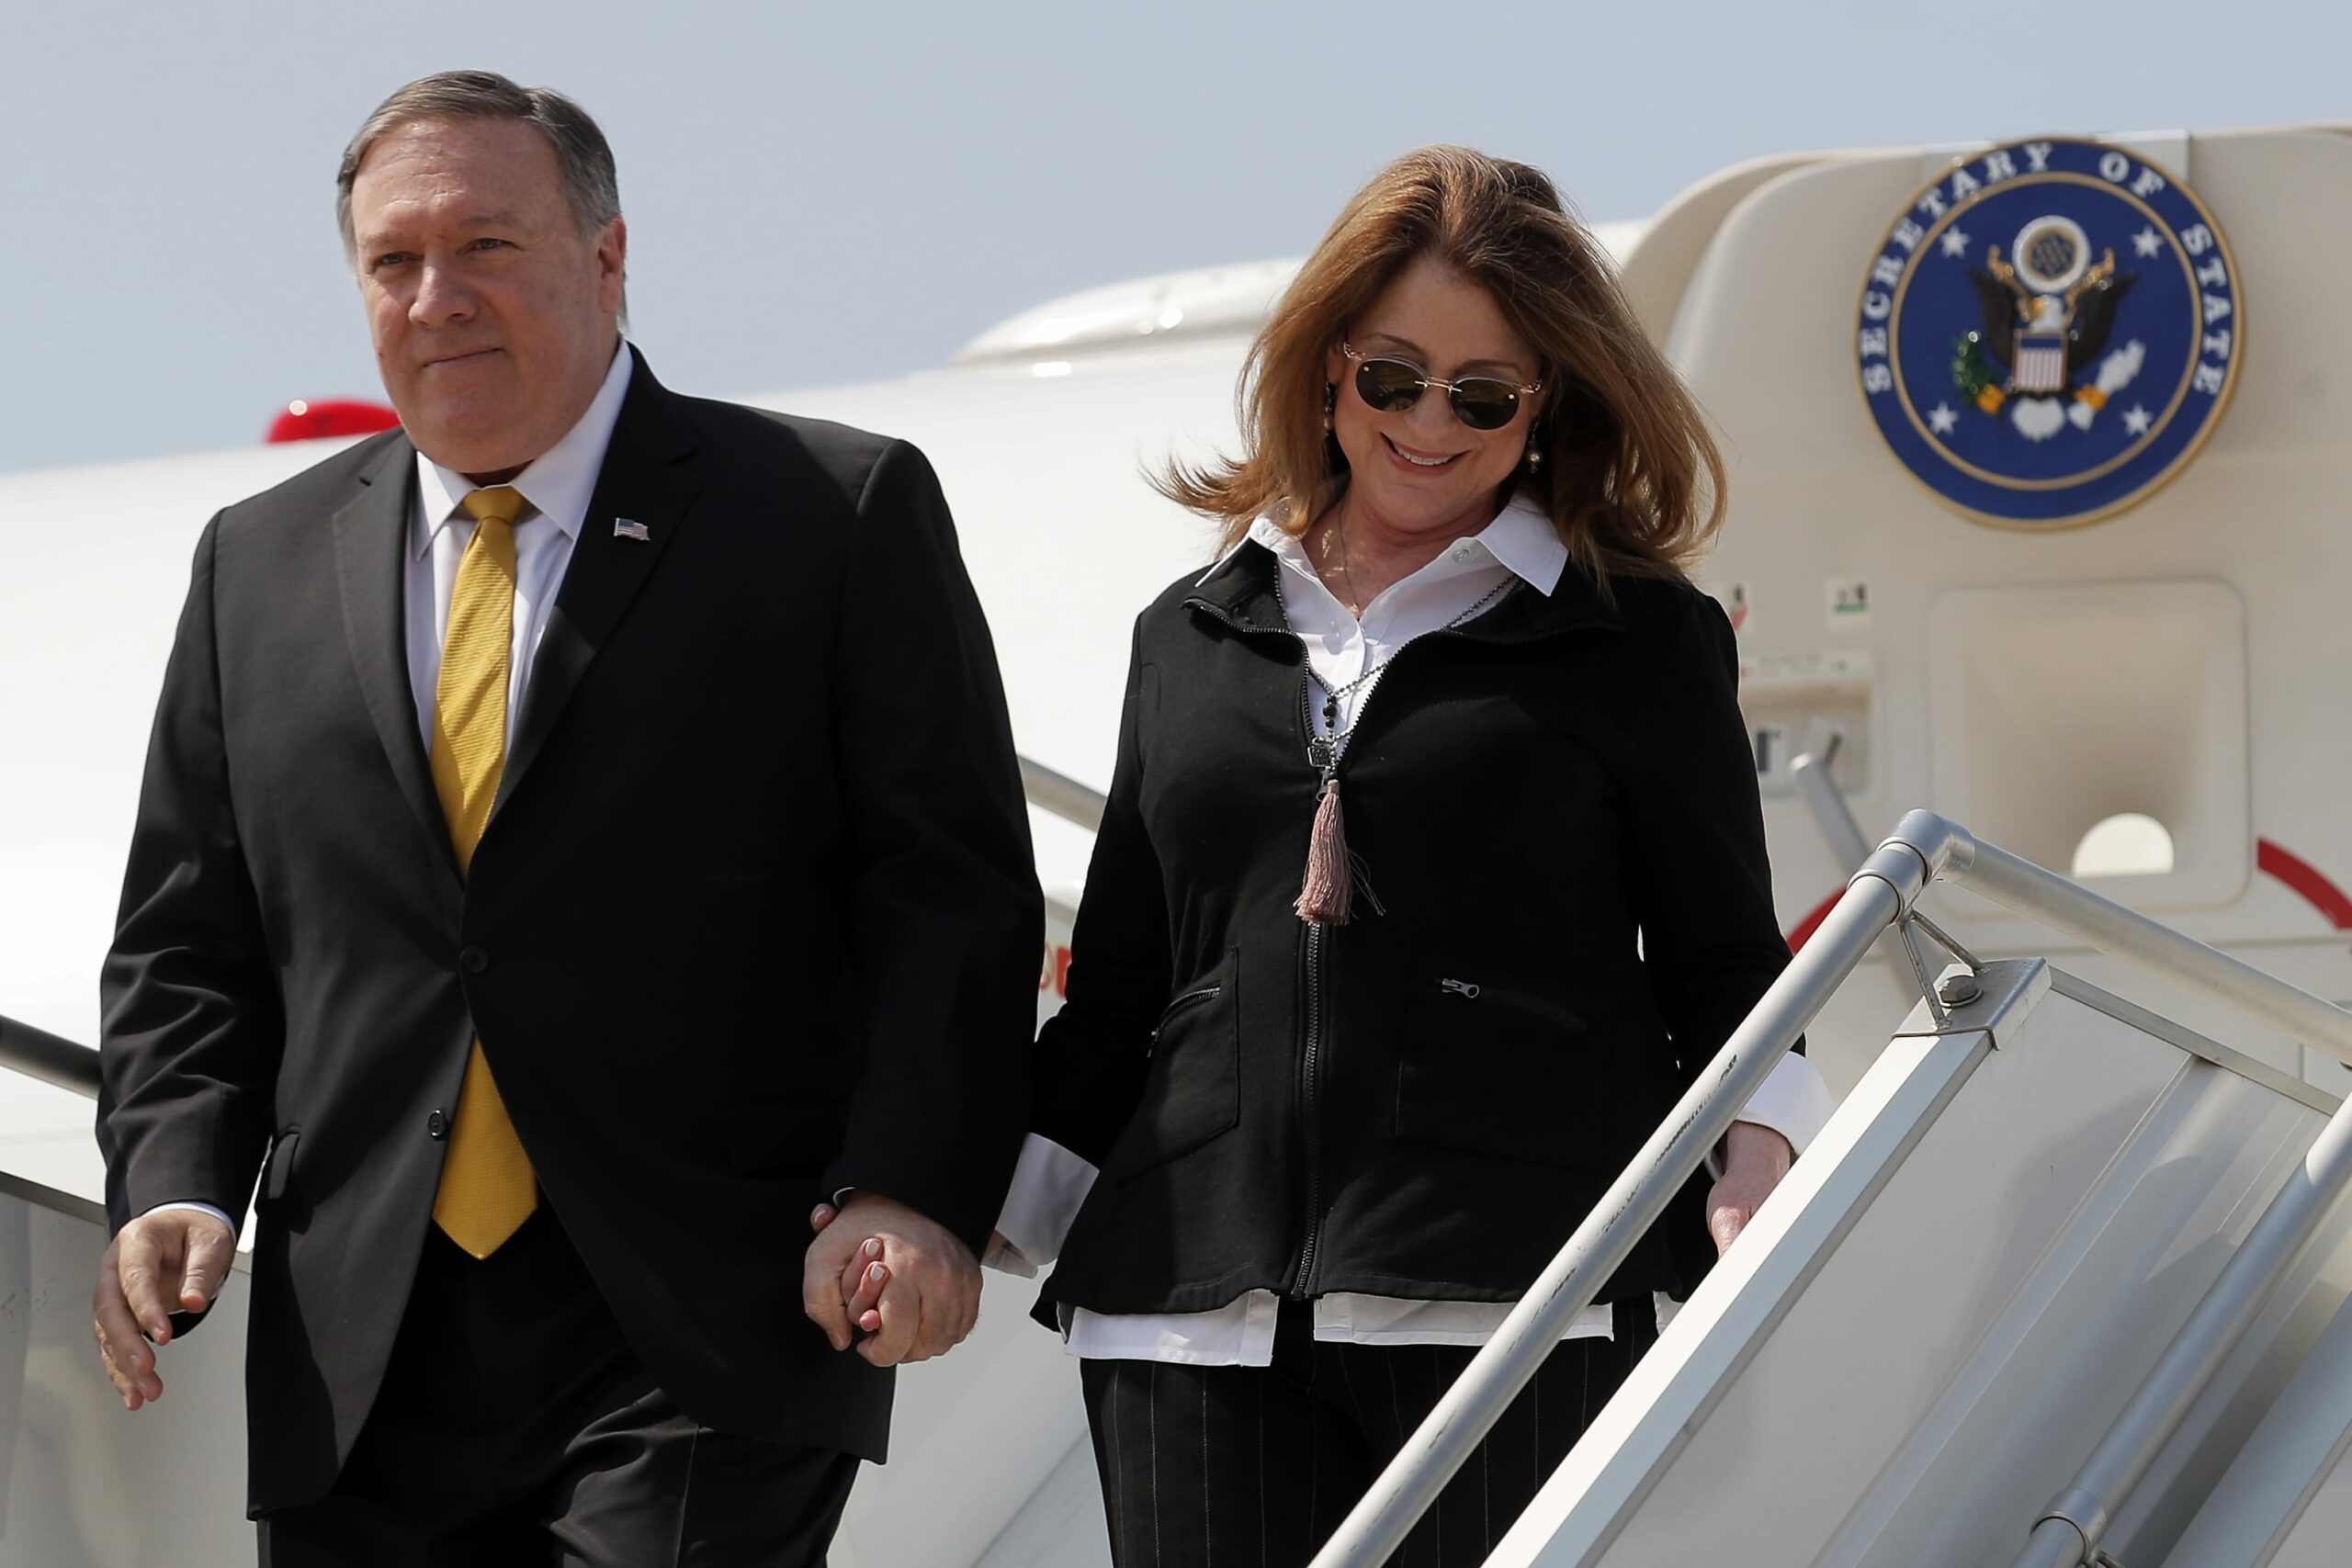 Pompeo's wife, Susan, to join State trip to Europe amid watchdog probe